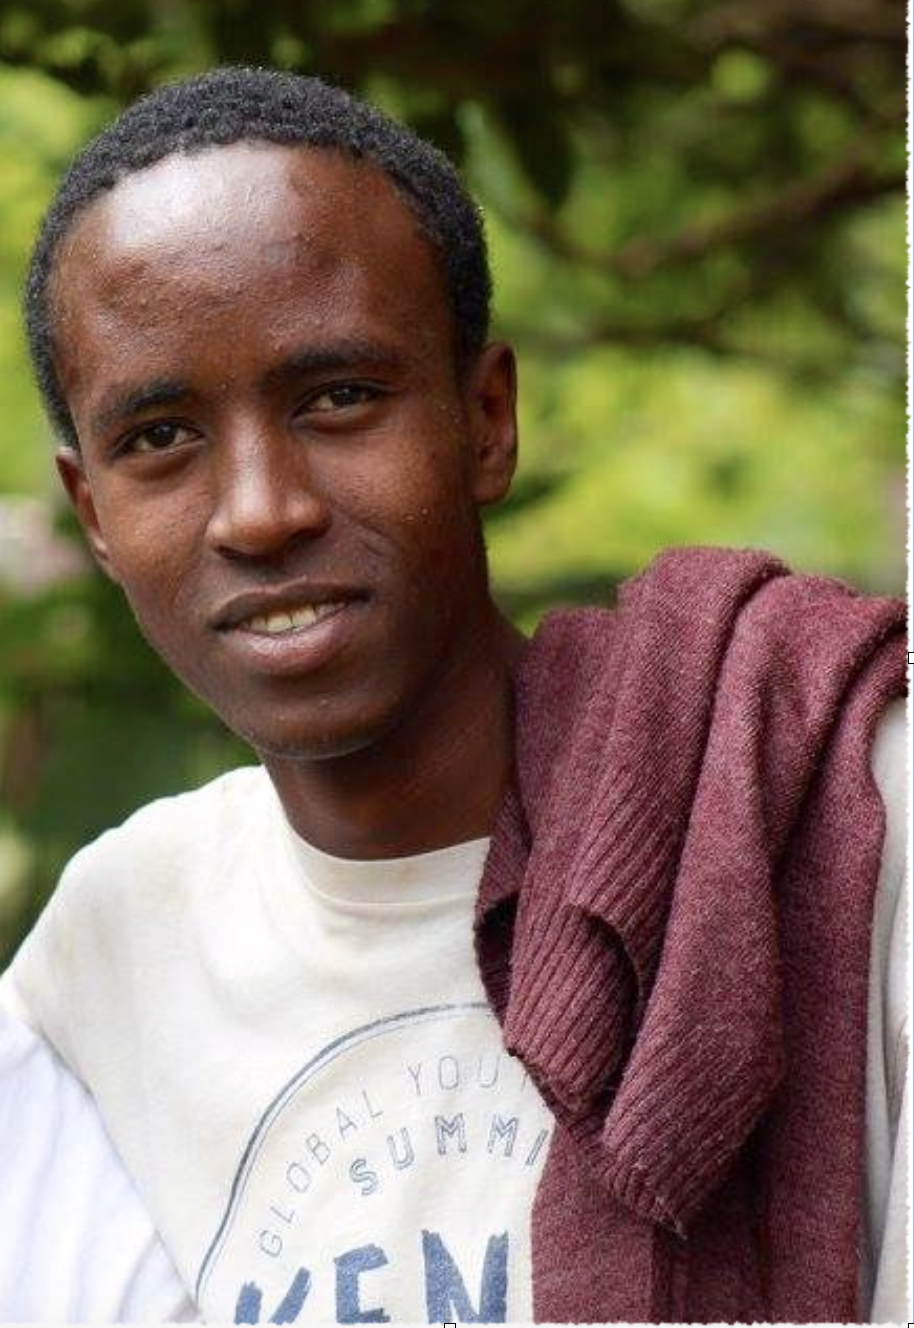 """Sarkam Abdi, 23- Kenya - Vision: To bring mindfulness and life skills to the underserved youth of Africa""""I seek ways to encourage people to own their transformation for the good of the world. I am a teacher; I create, I give and share content through life-skills teaching as a way of learning and sharing in the world. I value inclusion and human transformation through living with purpose; working on a holistic heart-aligned personal transformation life-skills teaching and bringing mindfulness to everyday of our lives.I love what I do and I am passionate in enhancing my skills in communication and sharing of ideas in human transformation. I want to grow my youthful approach in my organization through engaging content and learn from others who have made a step in the journey of human transformation.""""Abdi was a youth delegate at the Kenya Global Youth Peace Summit."""